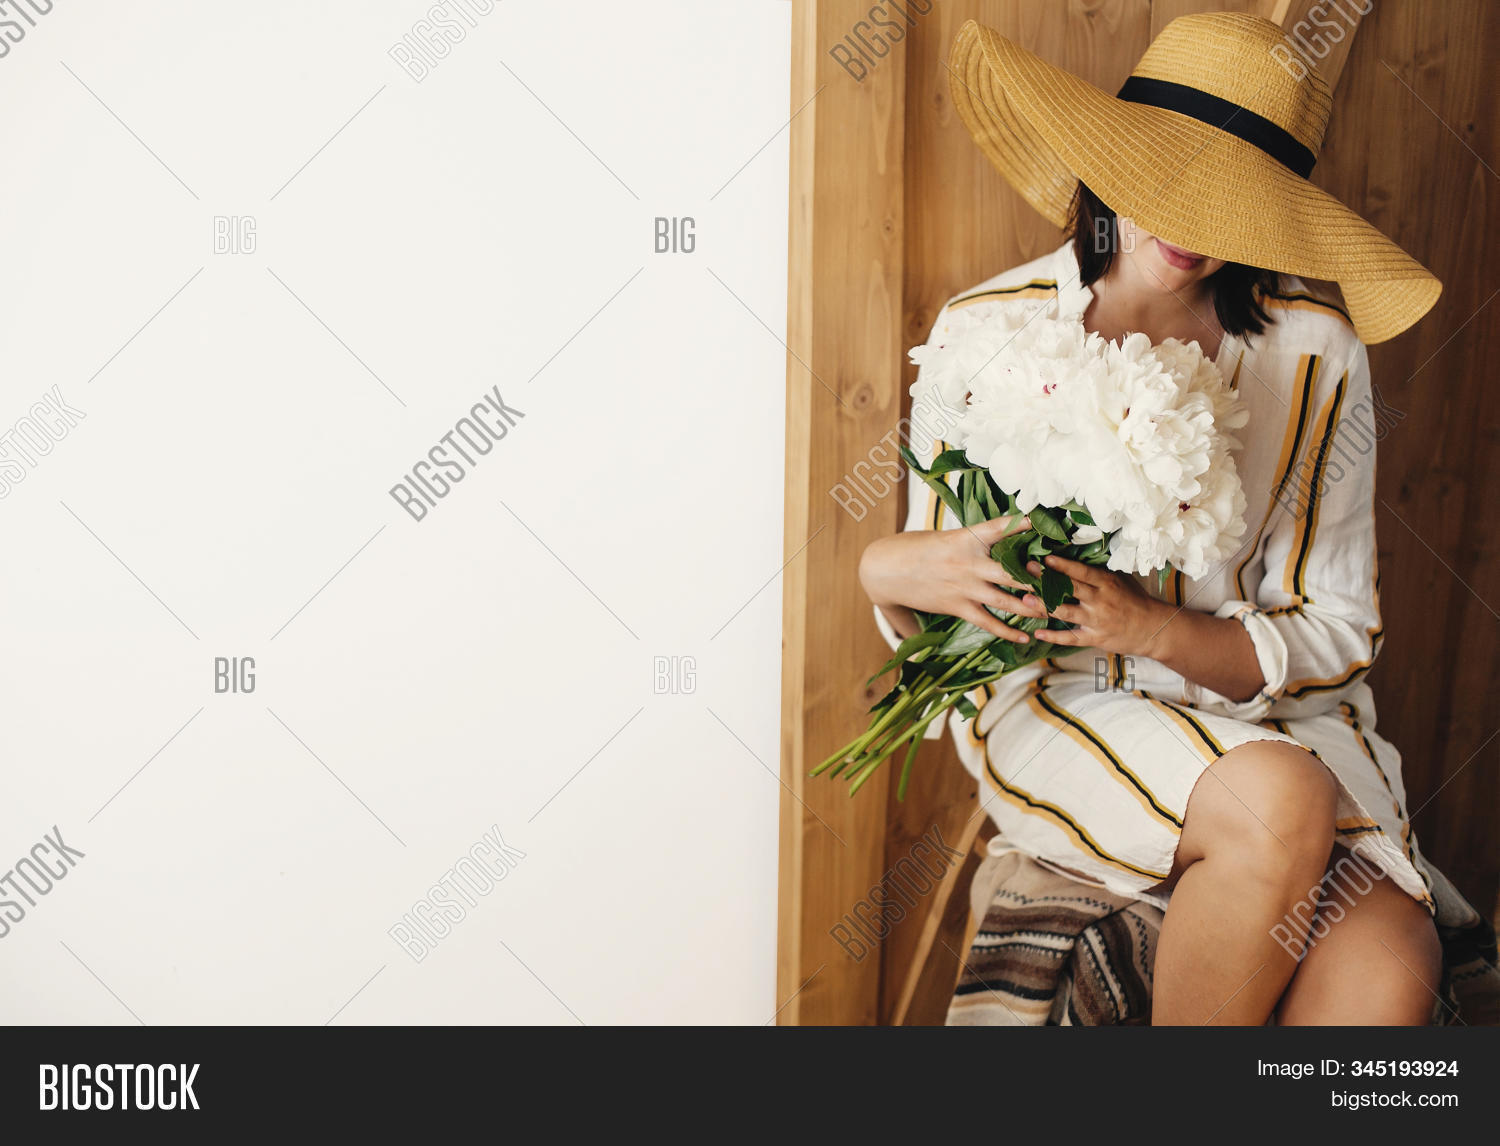 Stylish Boho Woman Hat Image Photo Free Trial Bigstock